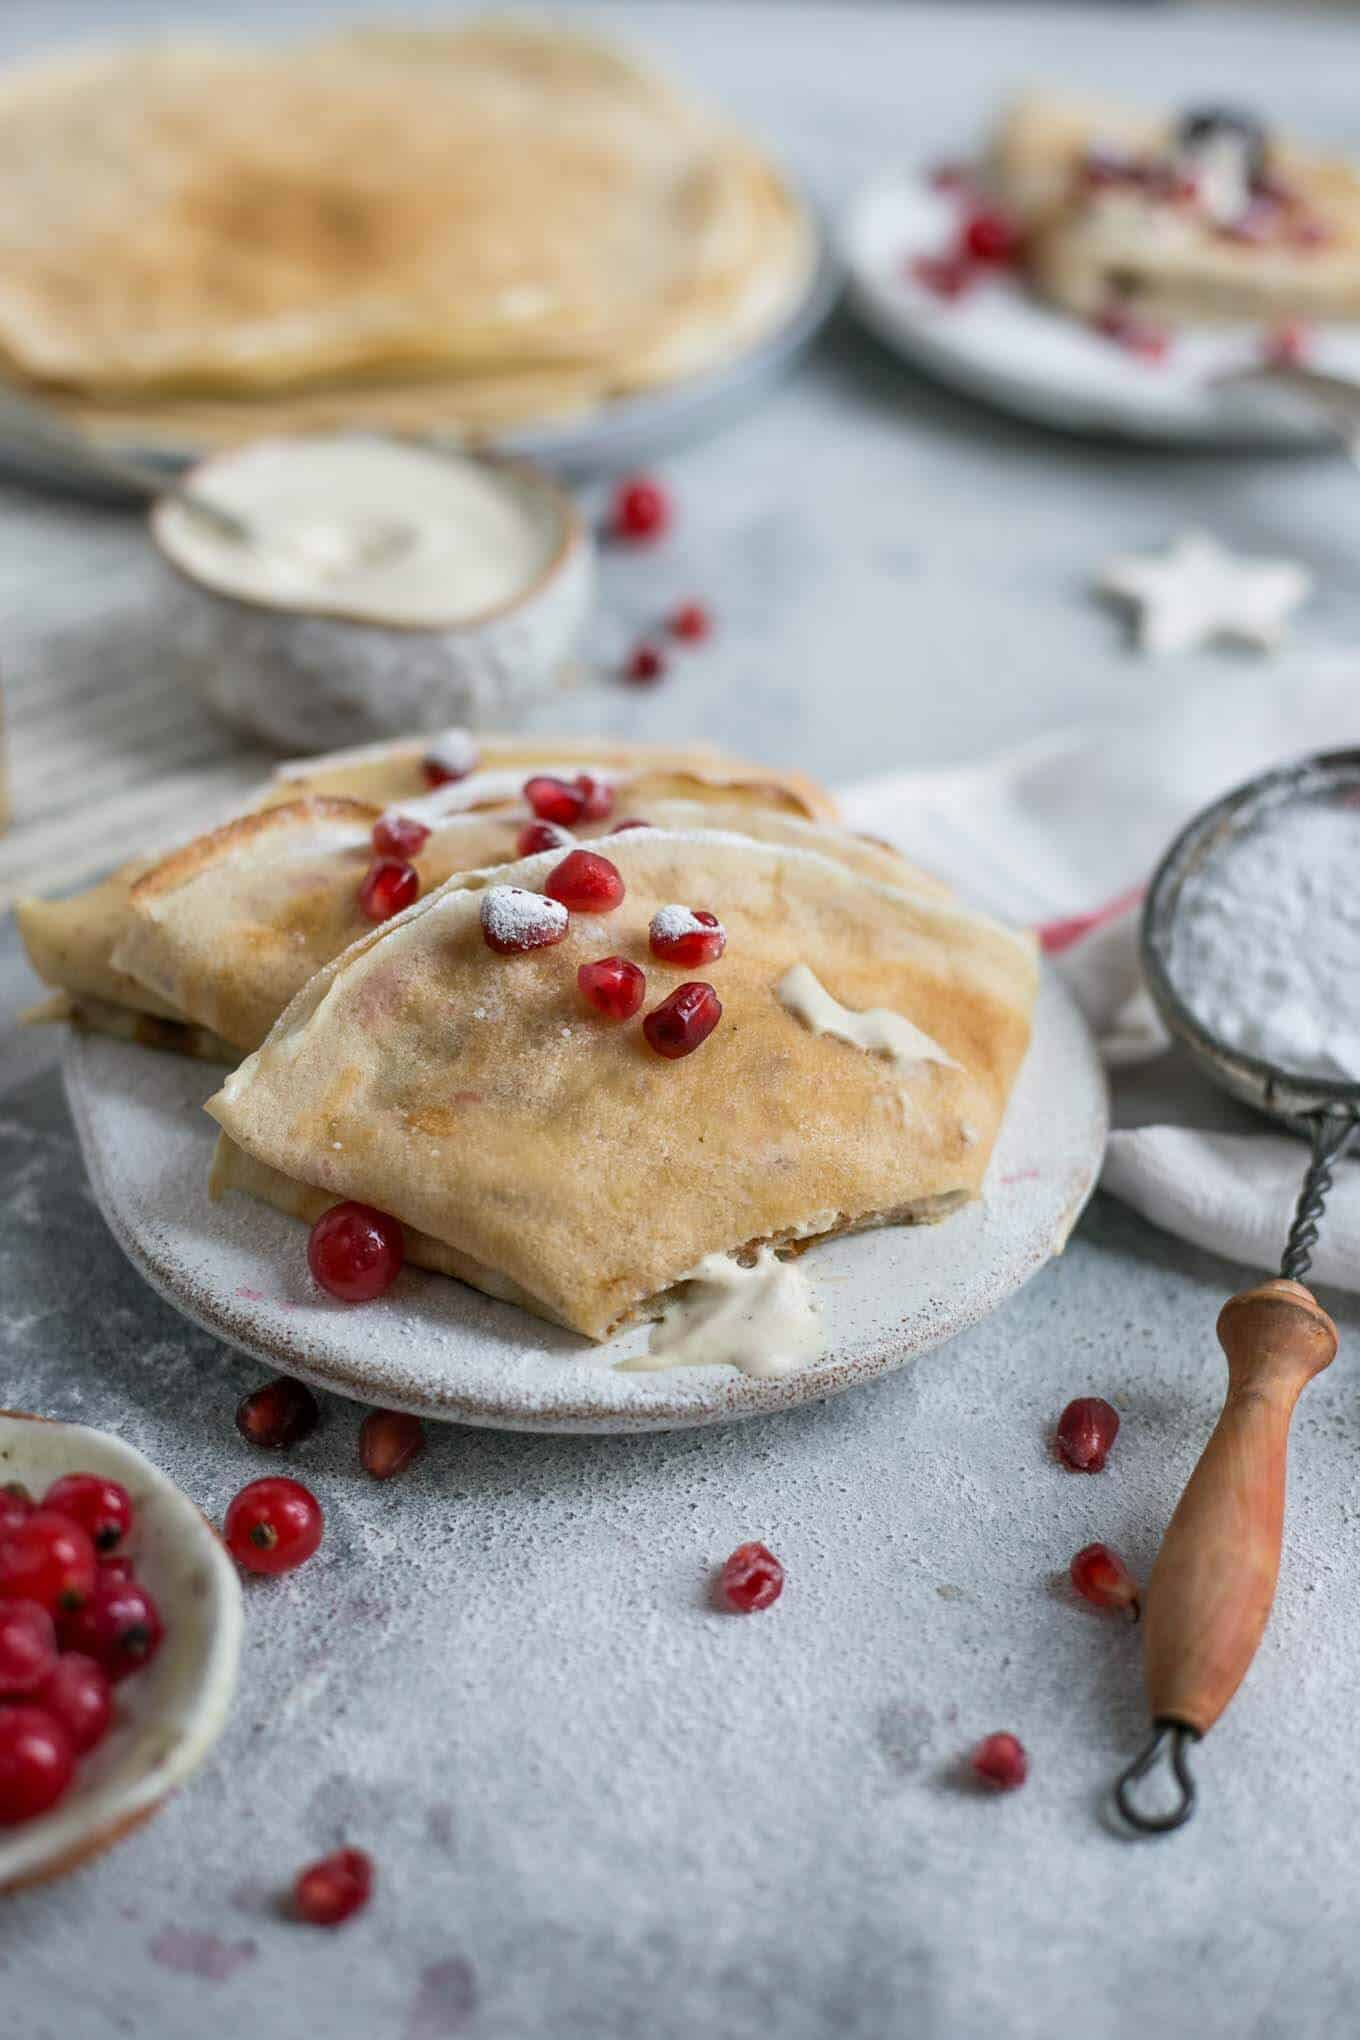 Delicious vegan french crepes, filled with vanilla cashew cream #vegan #crepes #brunch | via @annabanana.co